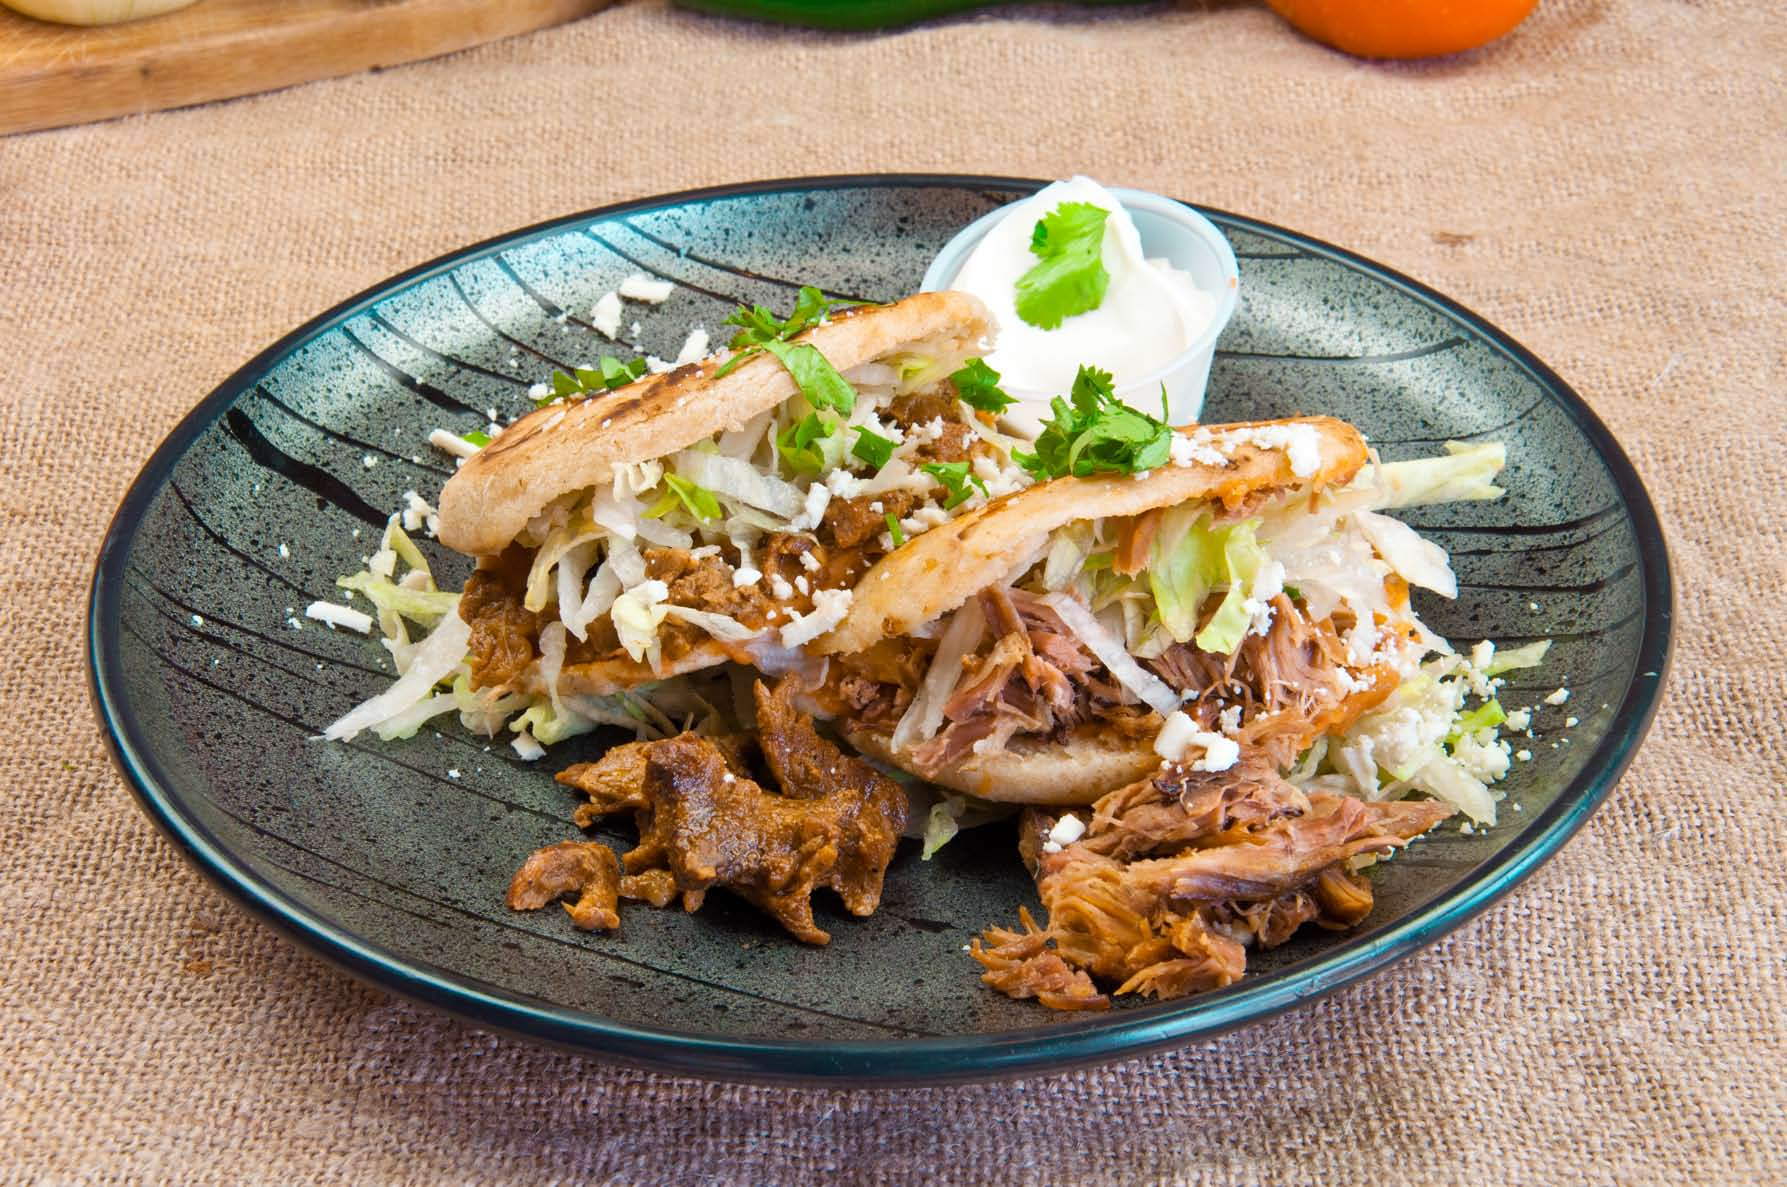 Two Carnitas Tacos Topped with shredded lettuce and cheese